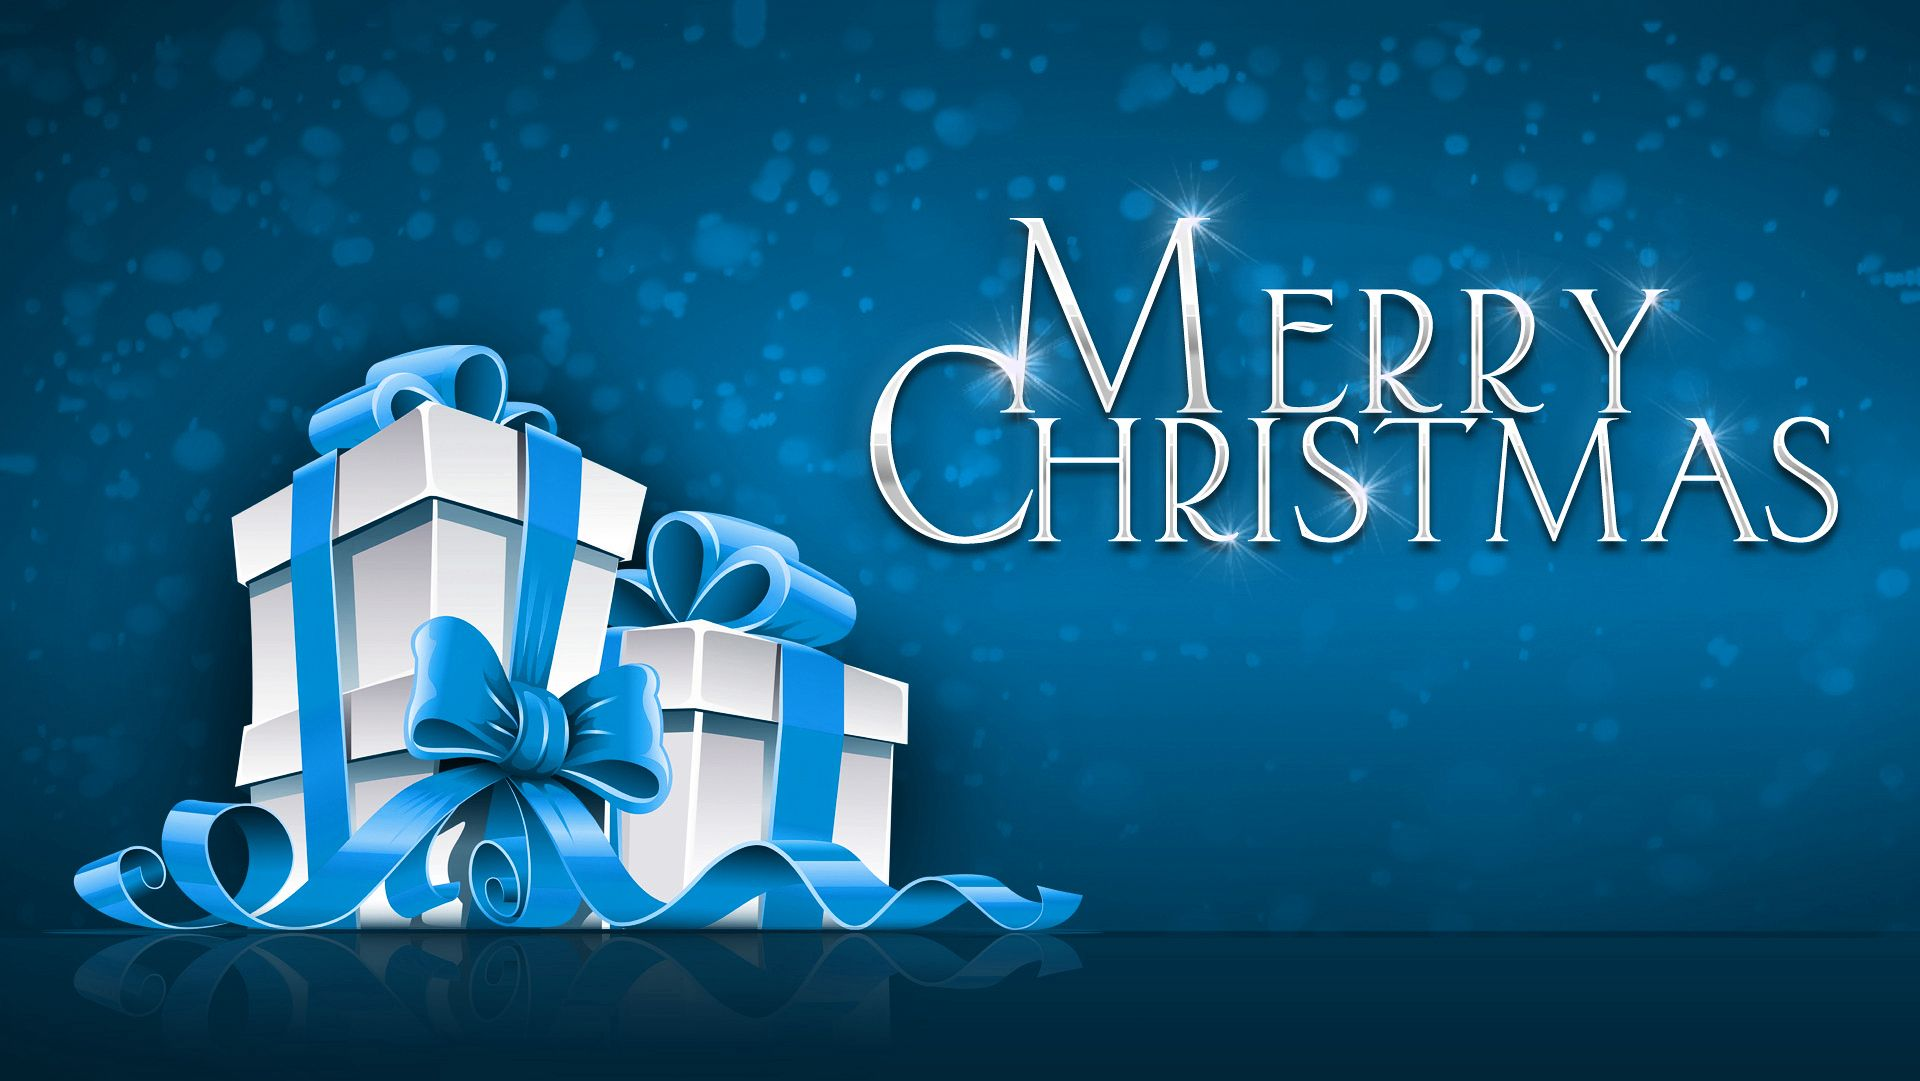 Merry Christmas Hd Wallpaper.Pin On Wallpapers